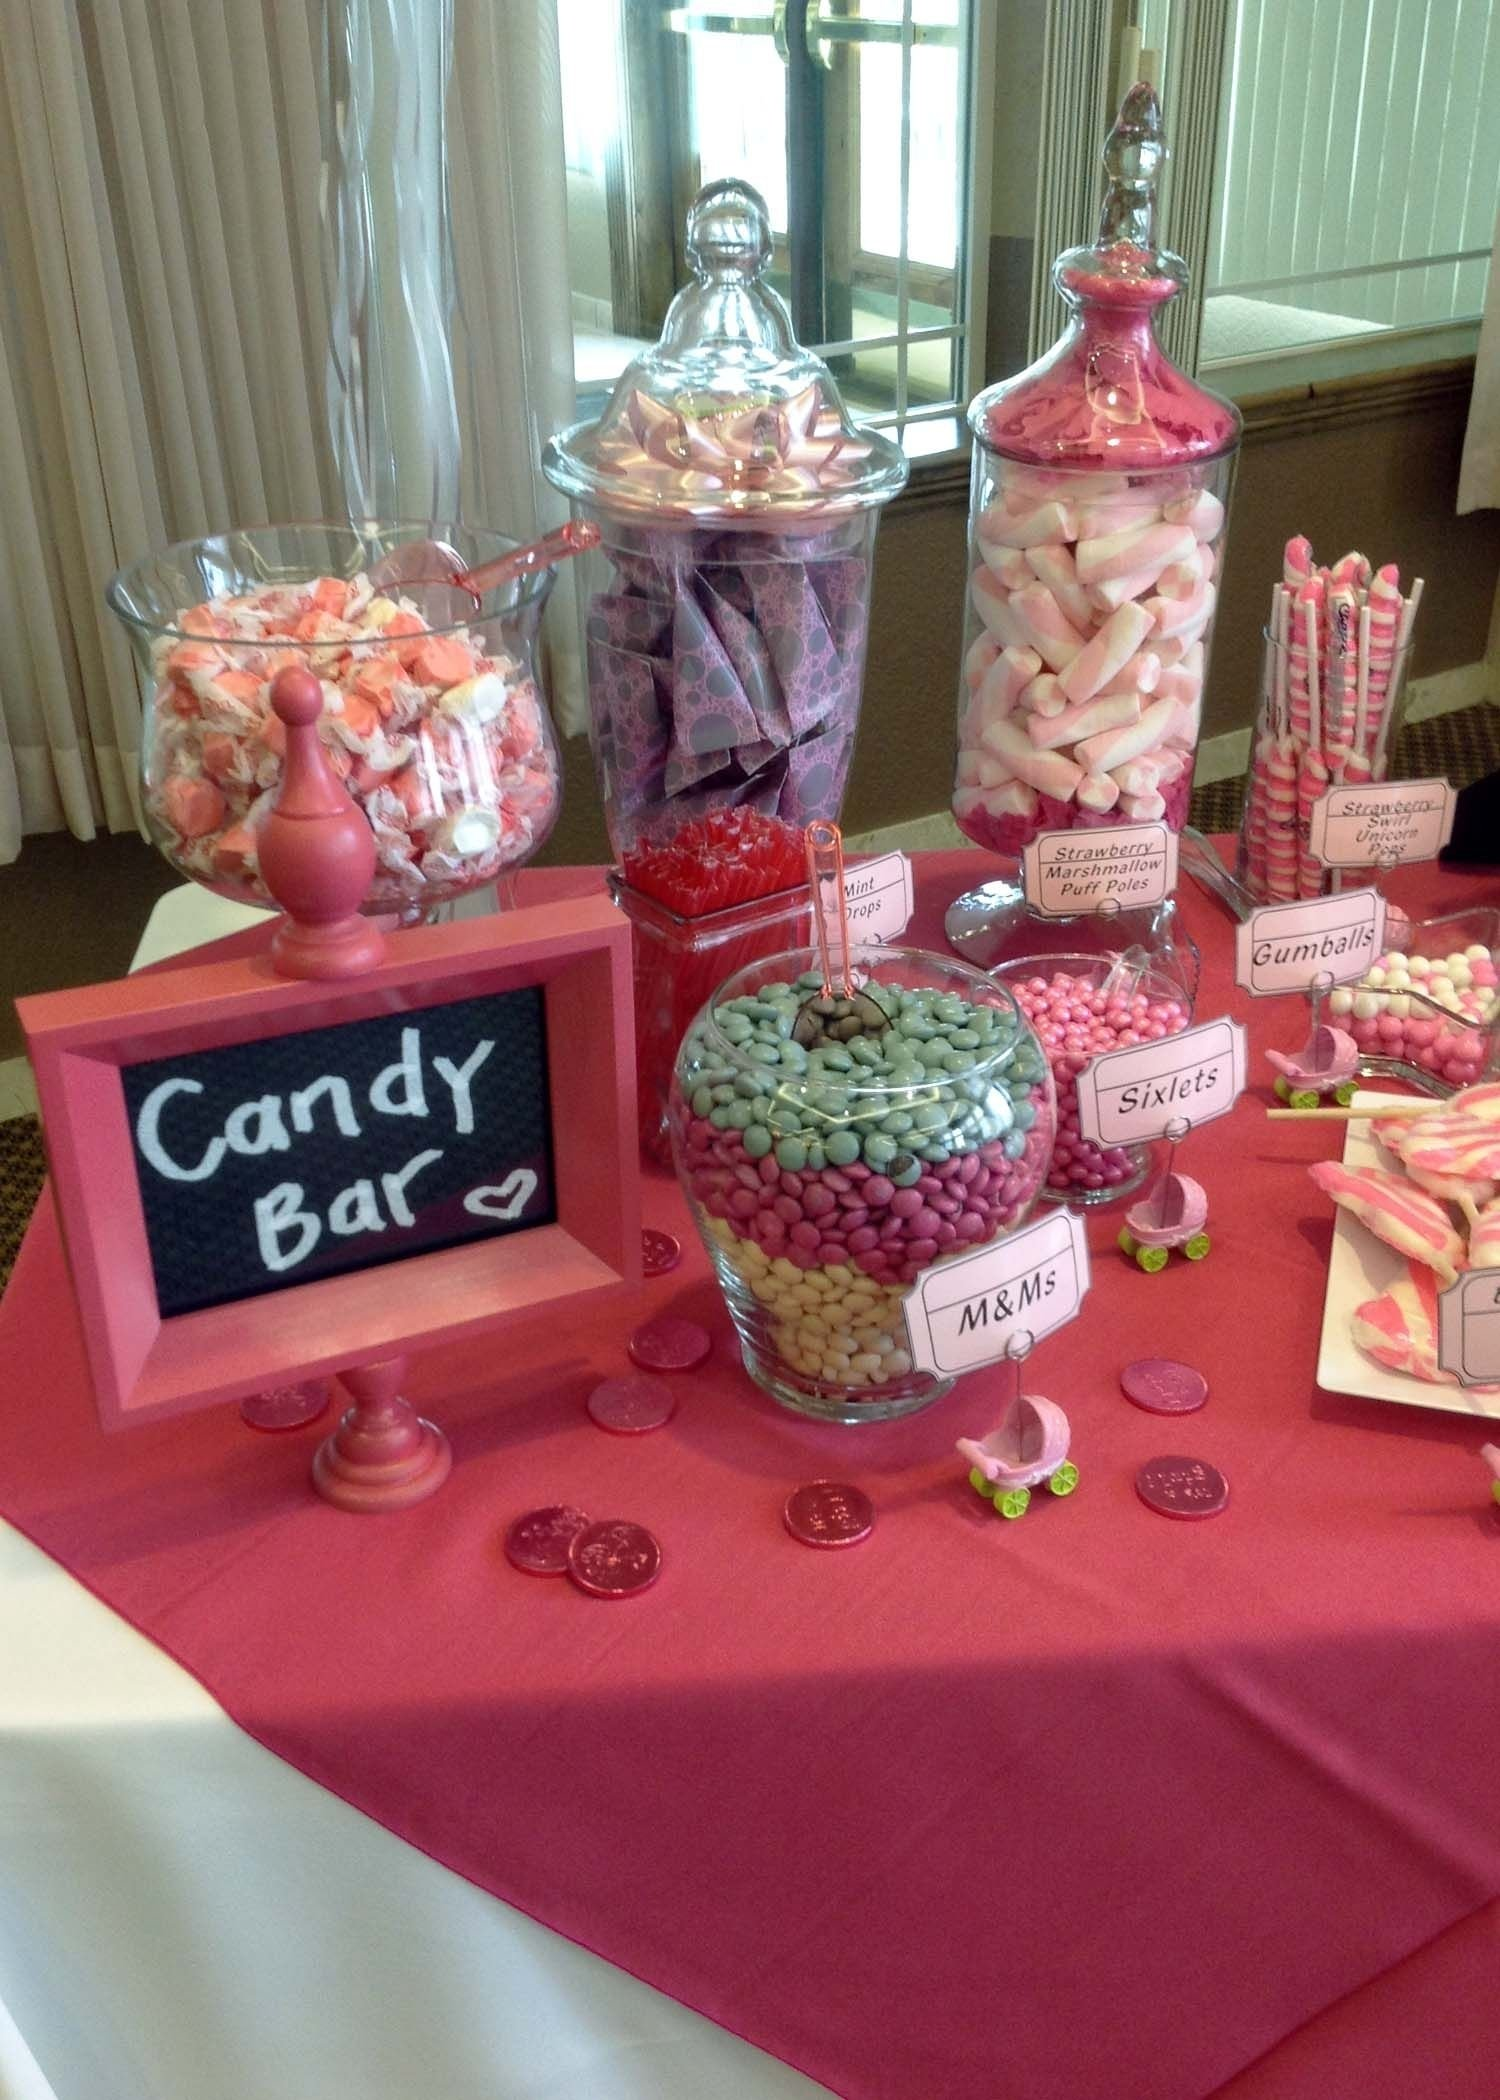 10 Elegant Baby Shower Candy Bar Ideas baby shower candy bar could find baby themed items and make up baby 2021